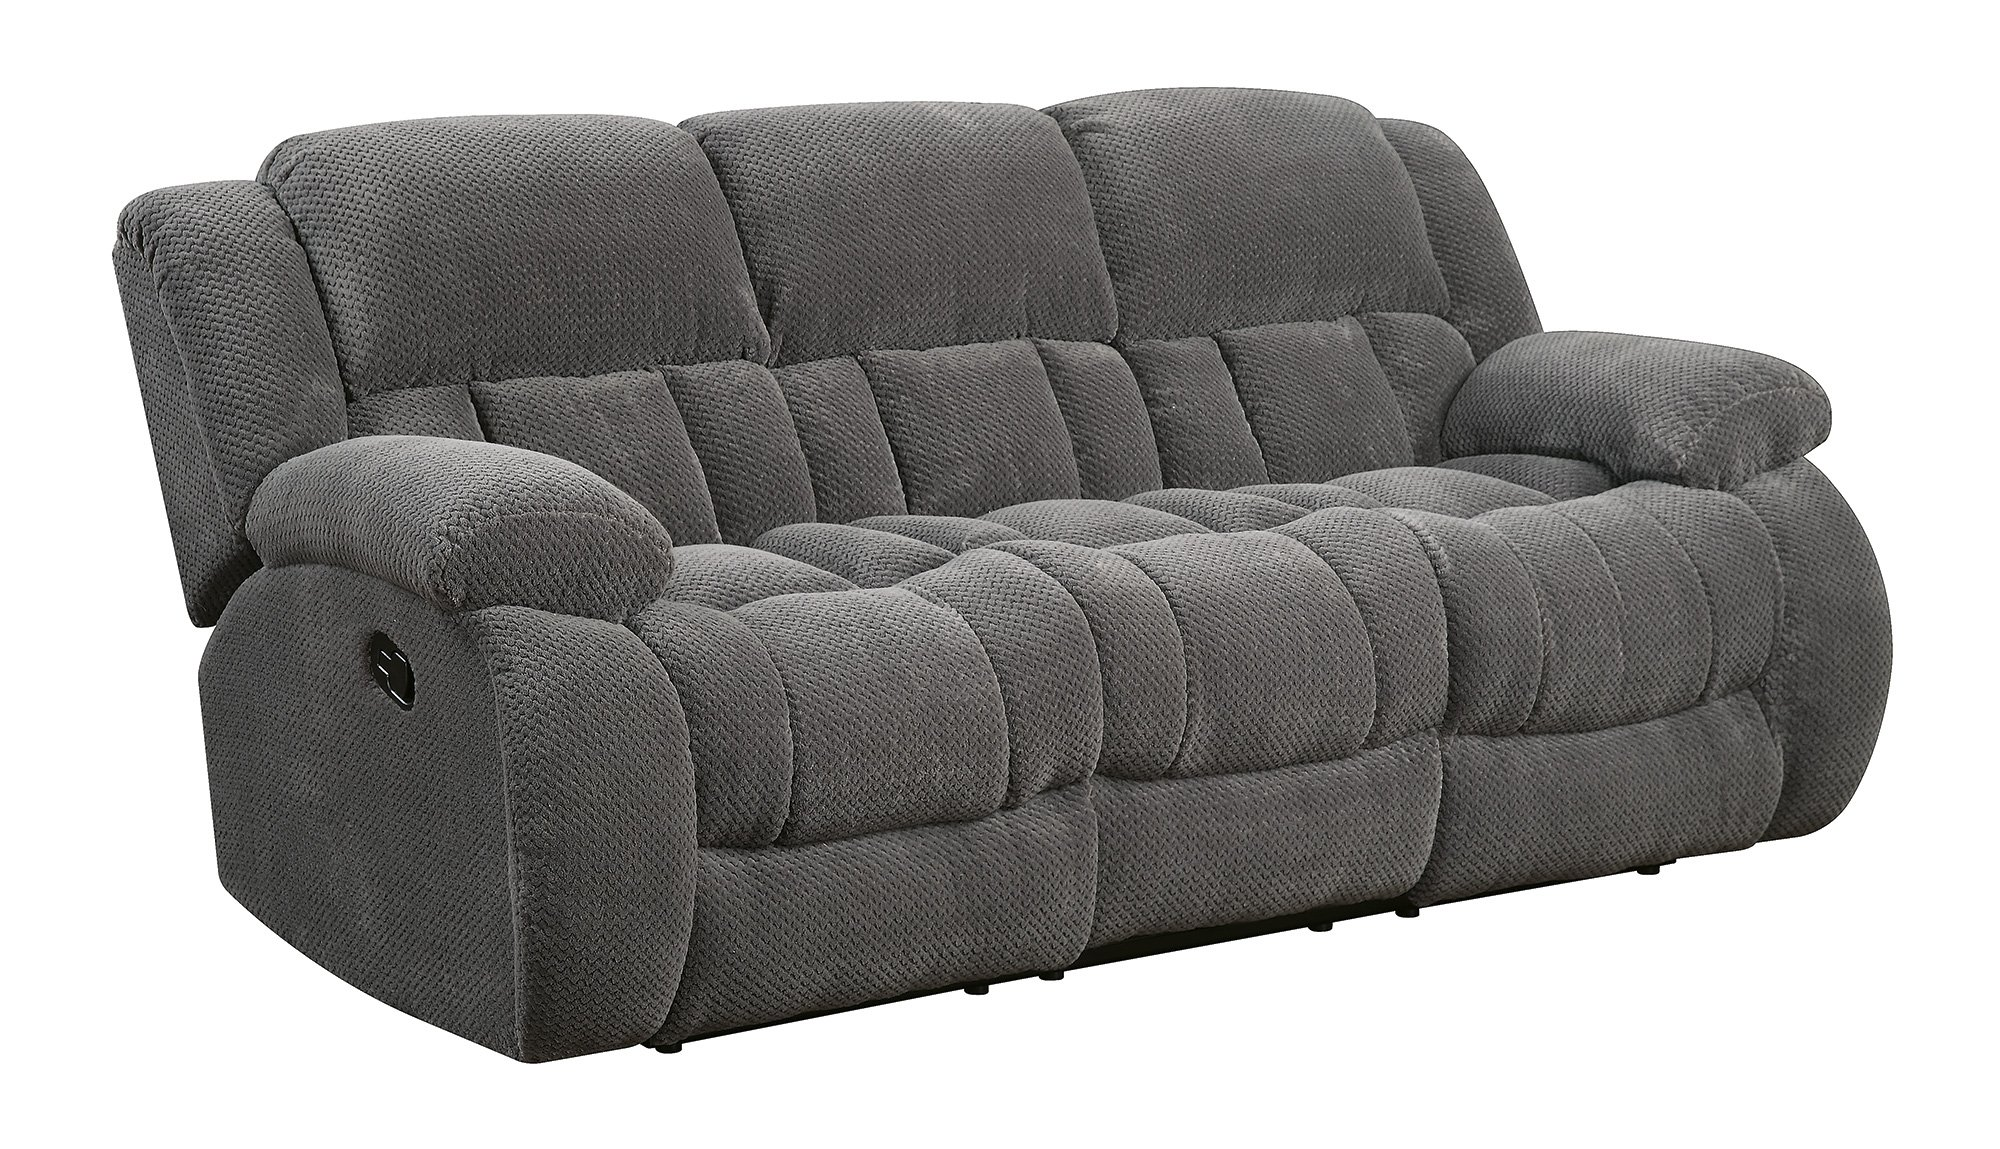 Coaster Home Furnishings 601921 Weissman Motion Collection Motion Sofa, Charcoal